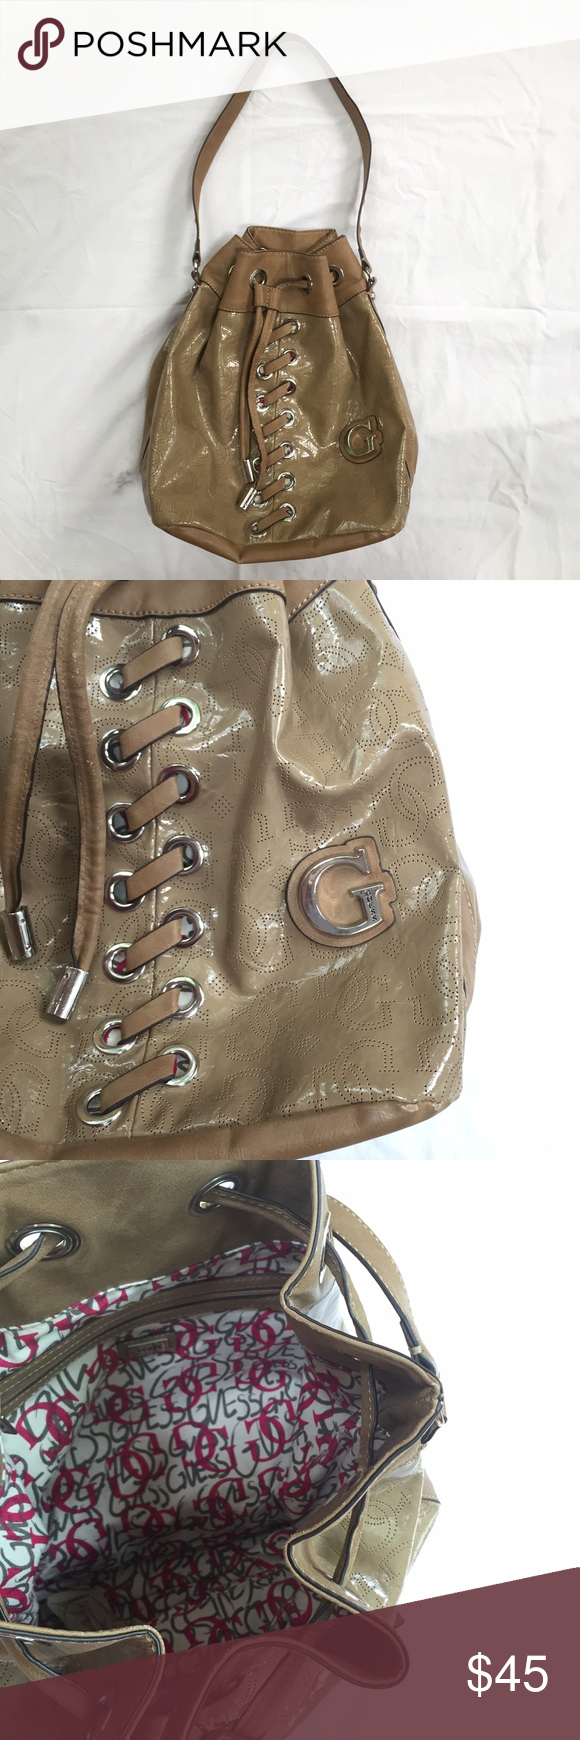 Guess Shoulder Bag Chic tan shoulder bag from Guess. Glossy material makes it easy to clean. Medium size holds every day essentials and can even fit a tablet. A little wear on the draw strings but barely noticeable. Rarely used! Guess Bags Shoulder Bags